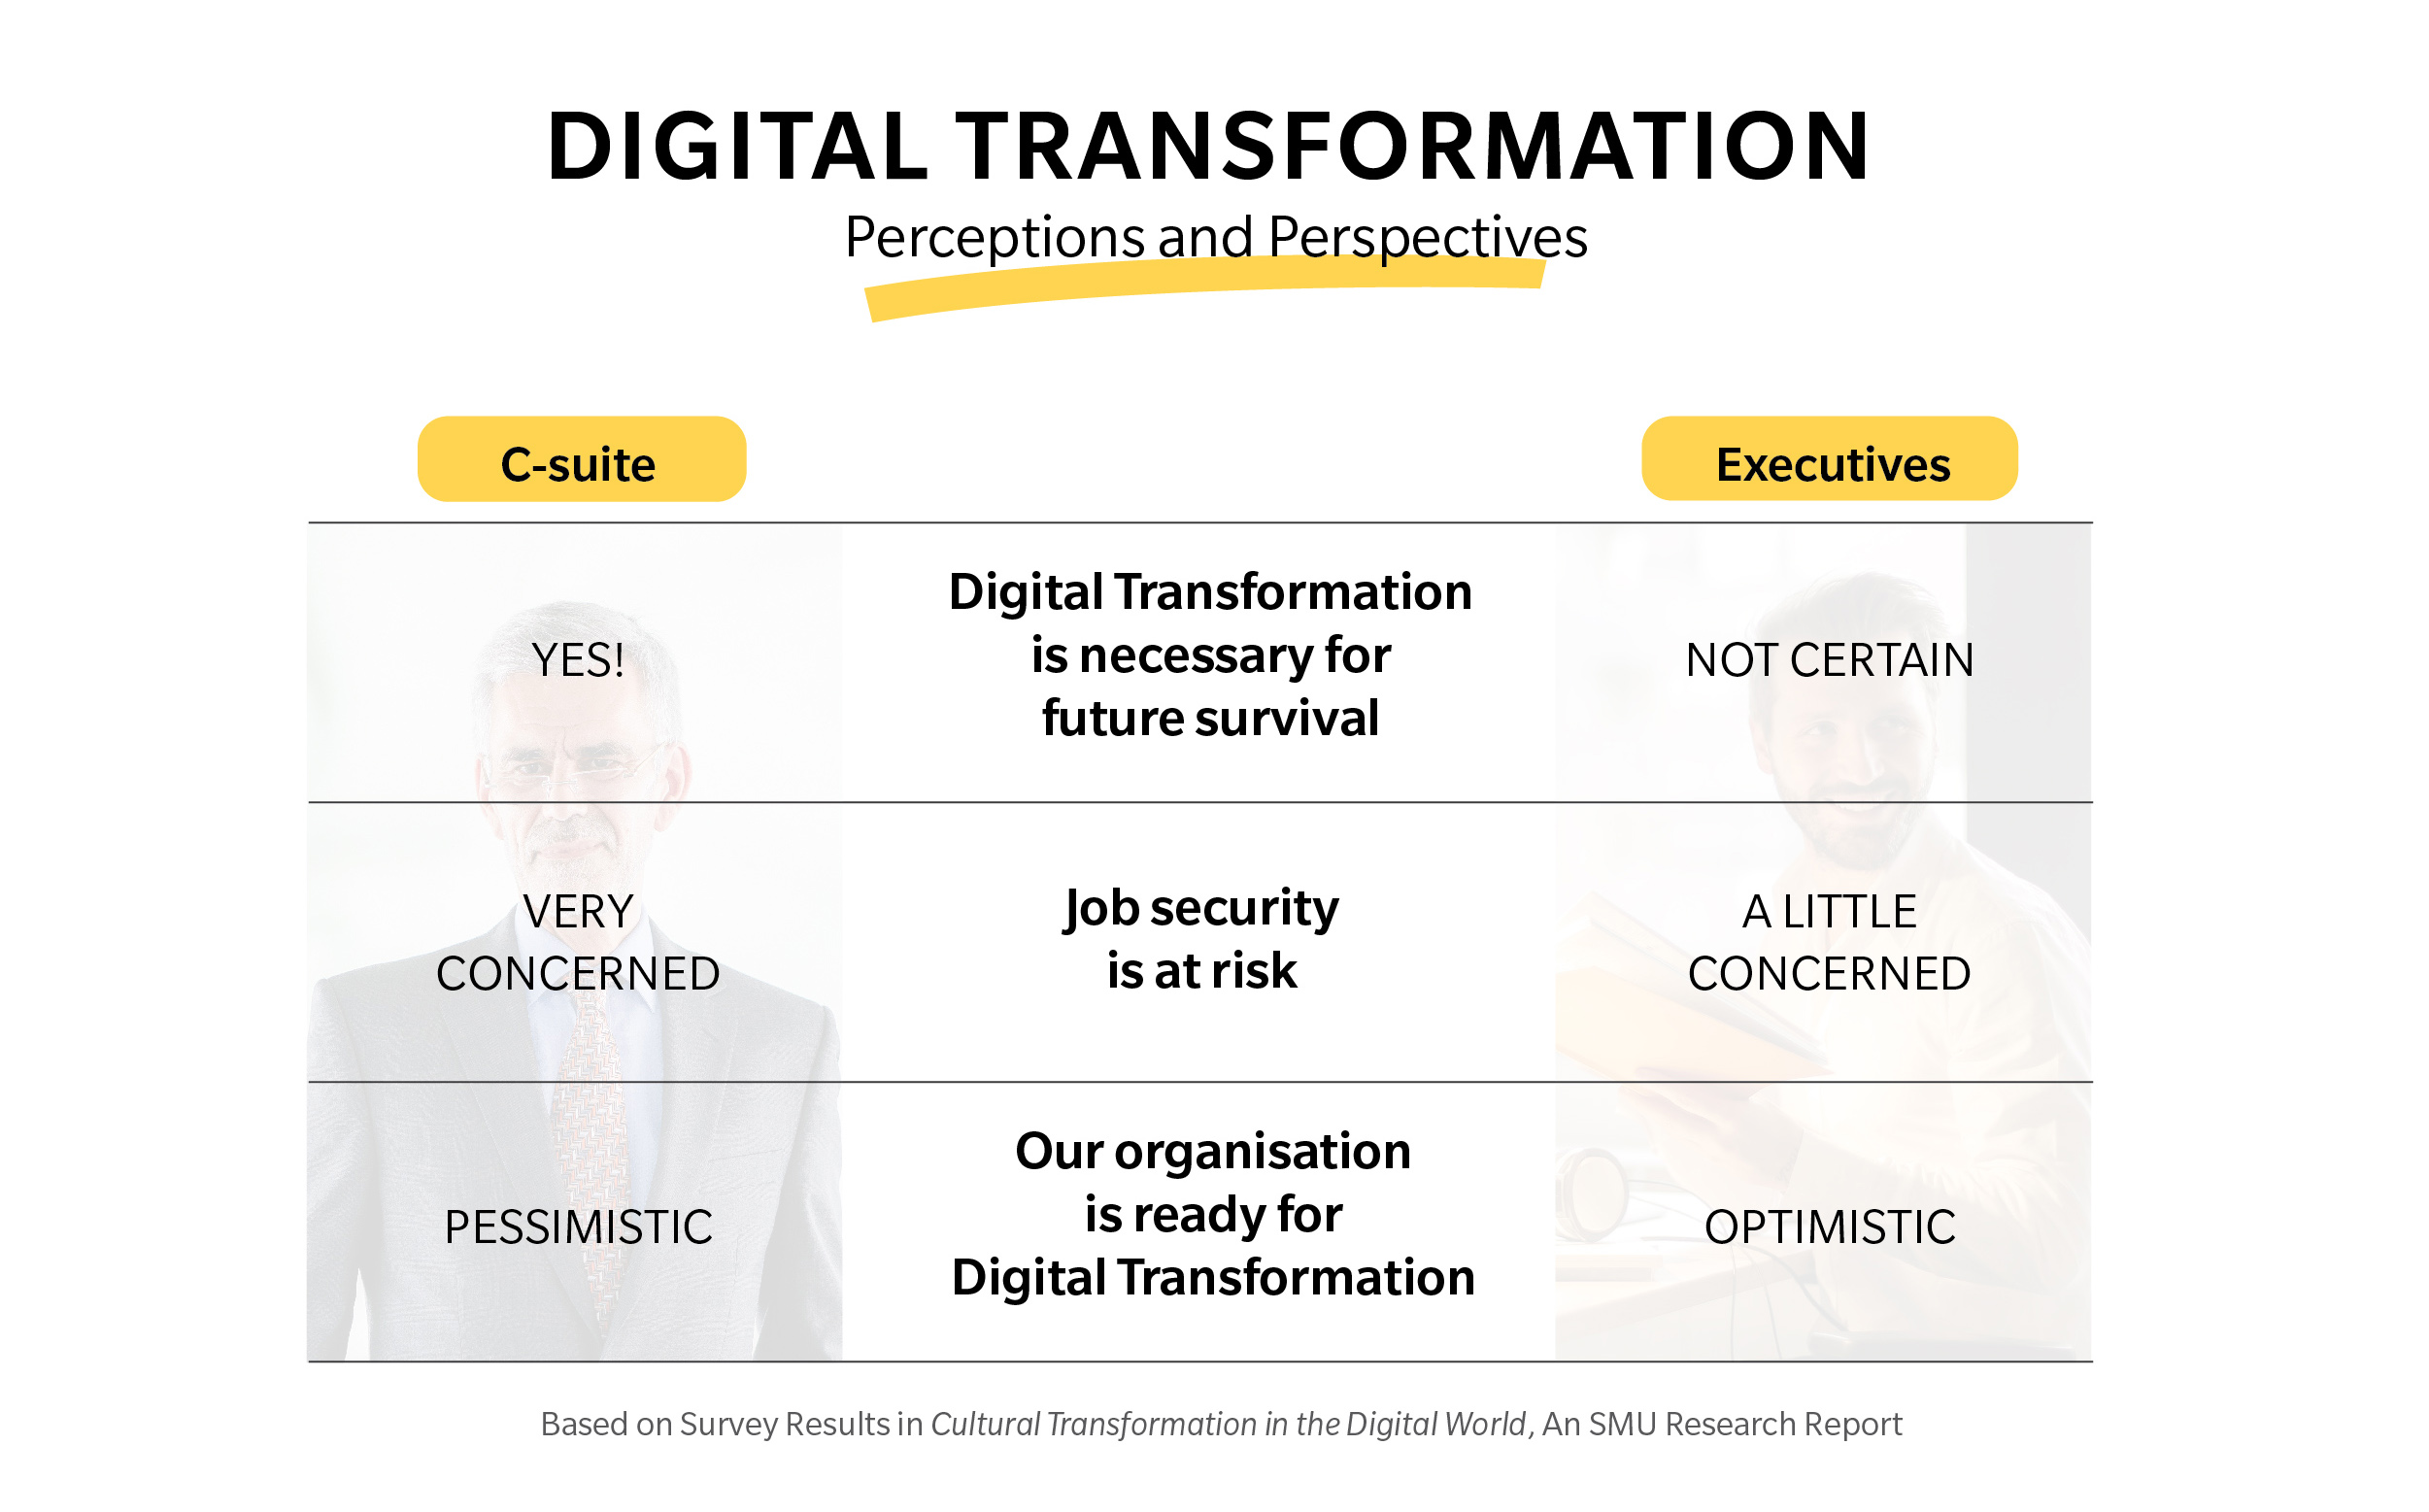 Digital Transformation Perceptions and Perspectives